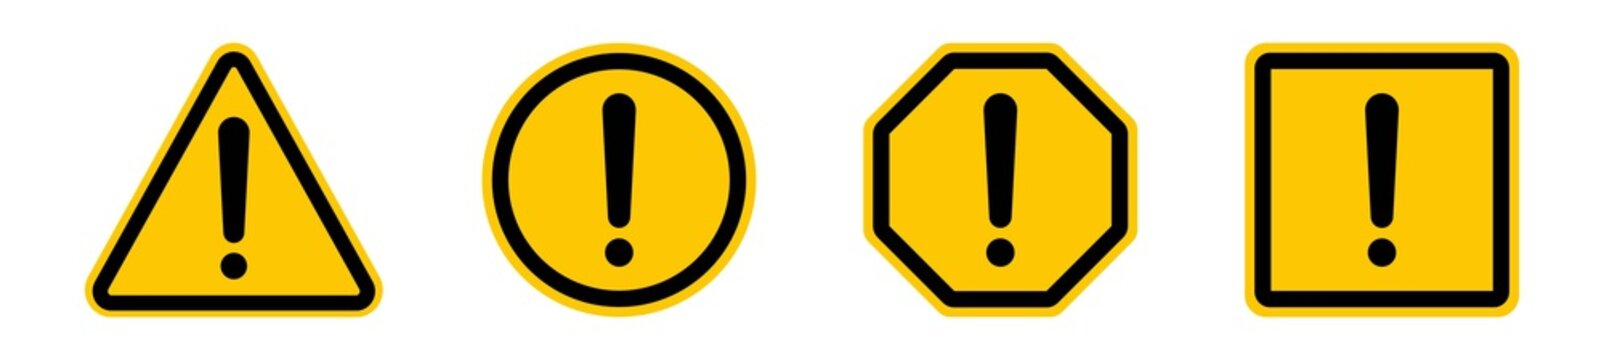 Set of warning, caution, attention icon sign, exclamation mark of warning alert icon